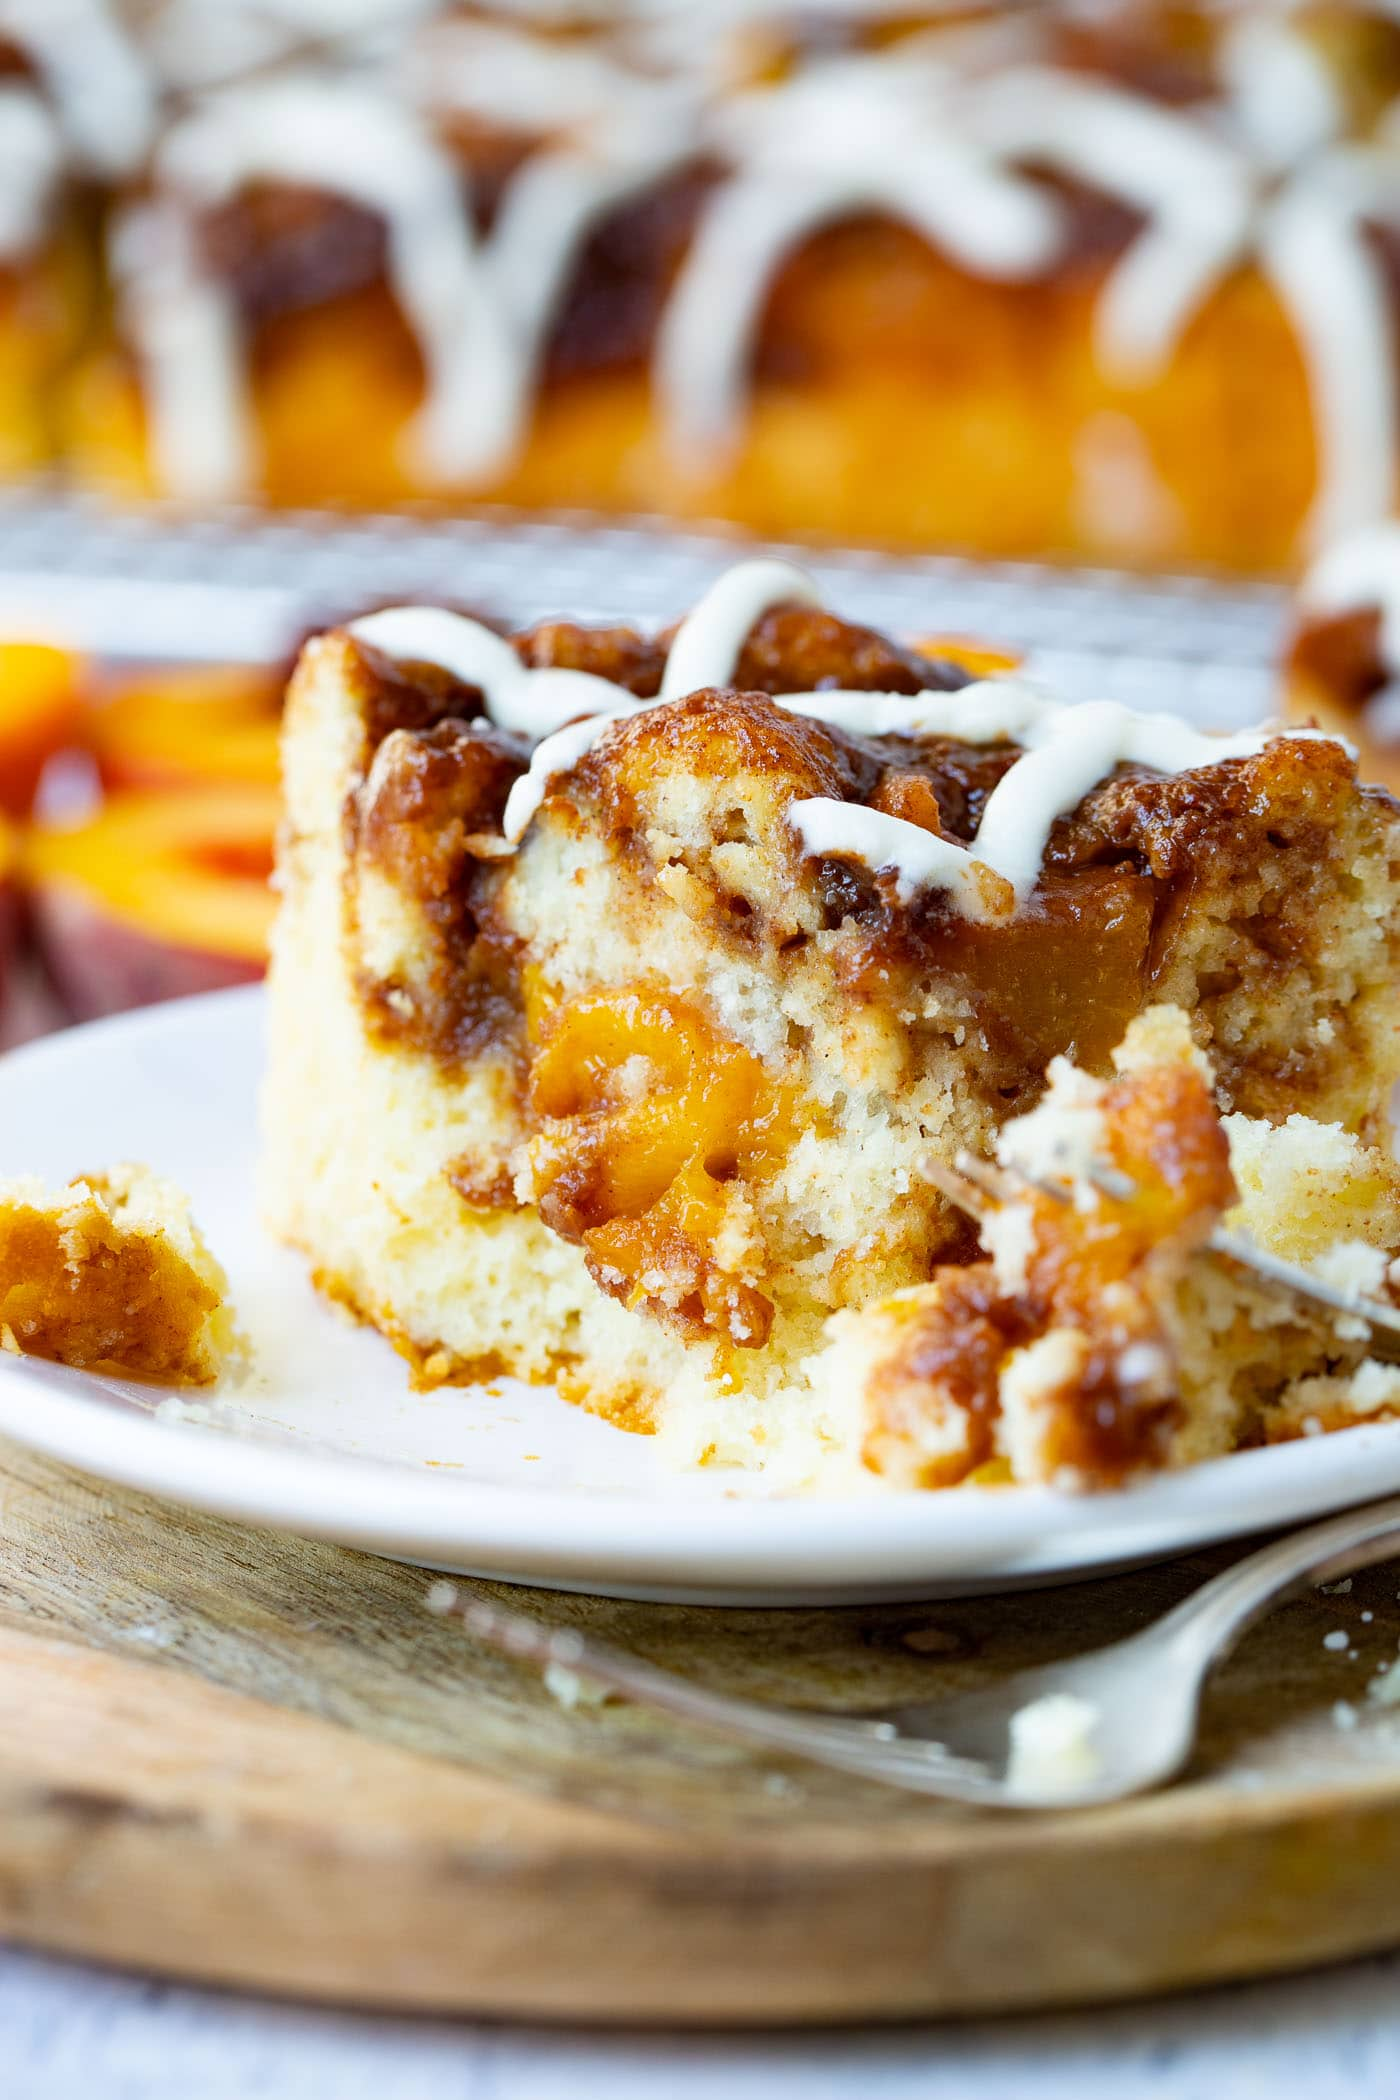 Photo of one piece of peach coffee cake that was cut with a fork